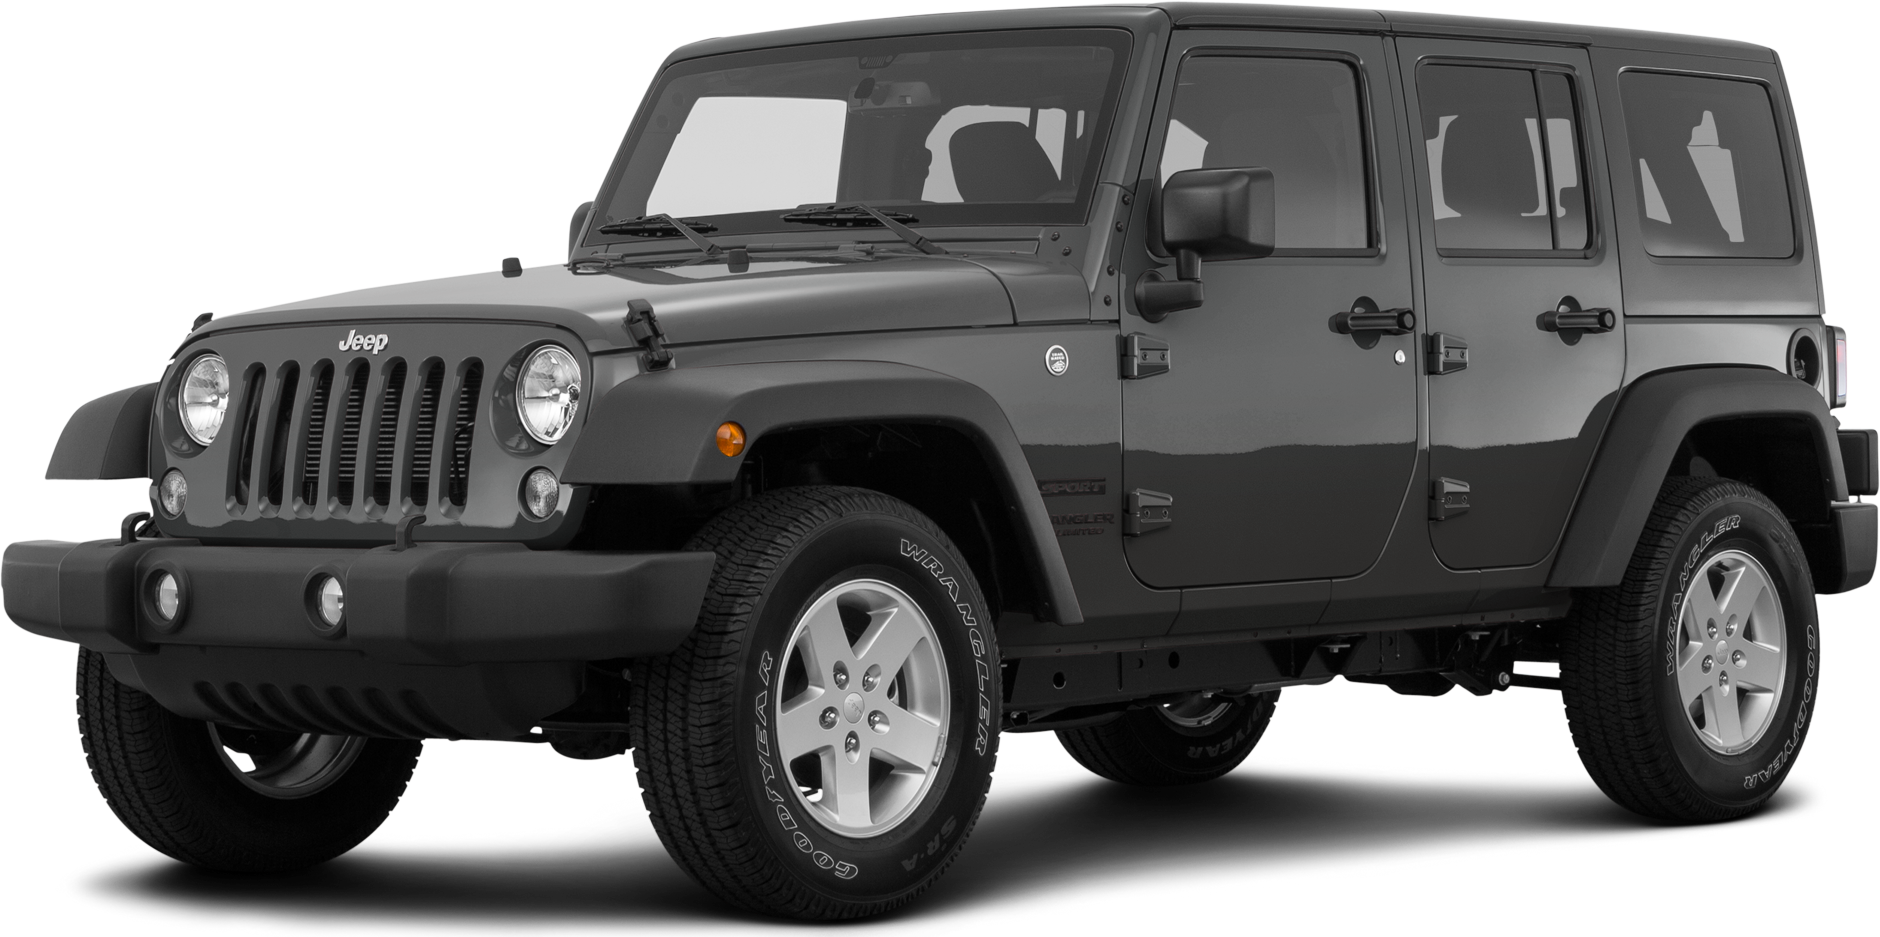 2016 Jeep Wrangler Values Cars For Sale Kelley Blue Book